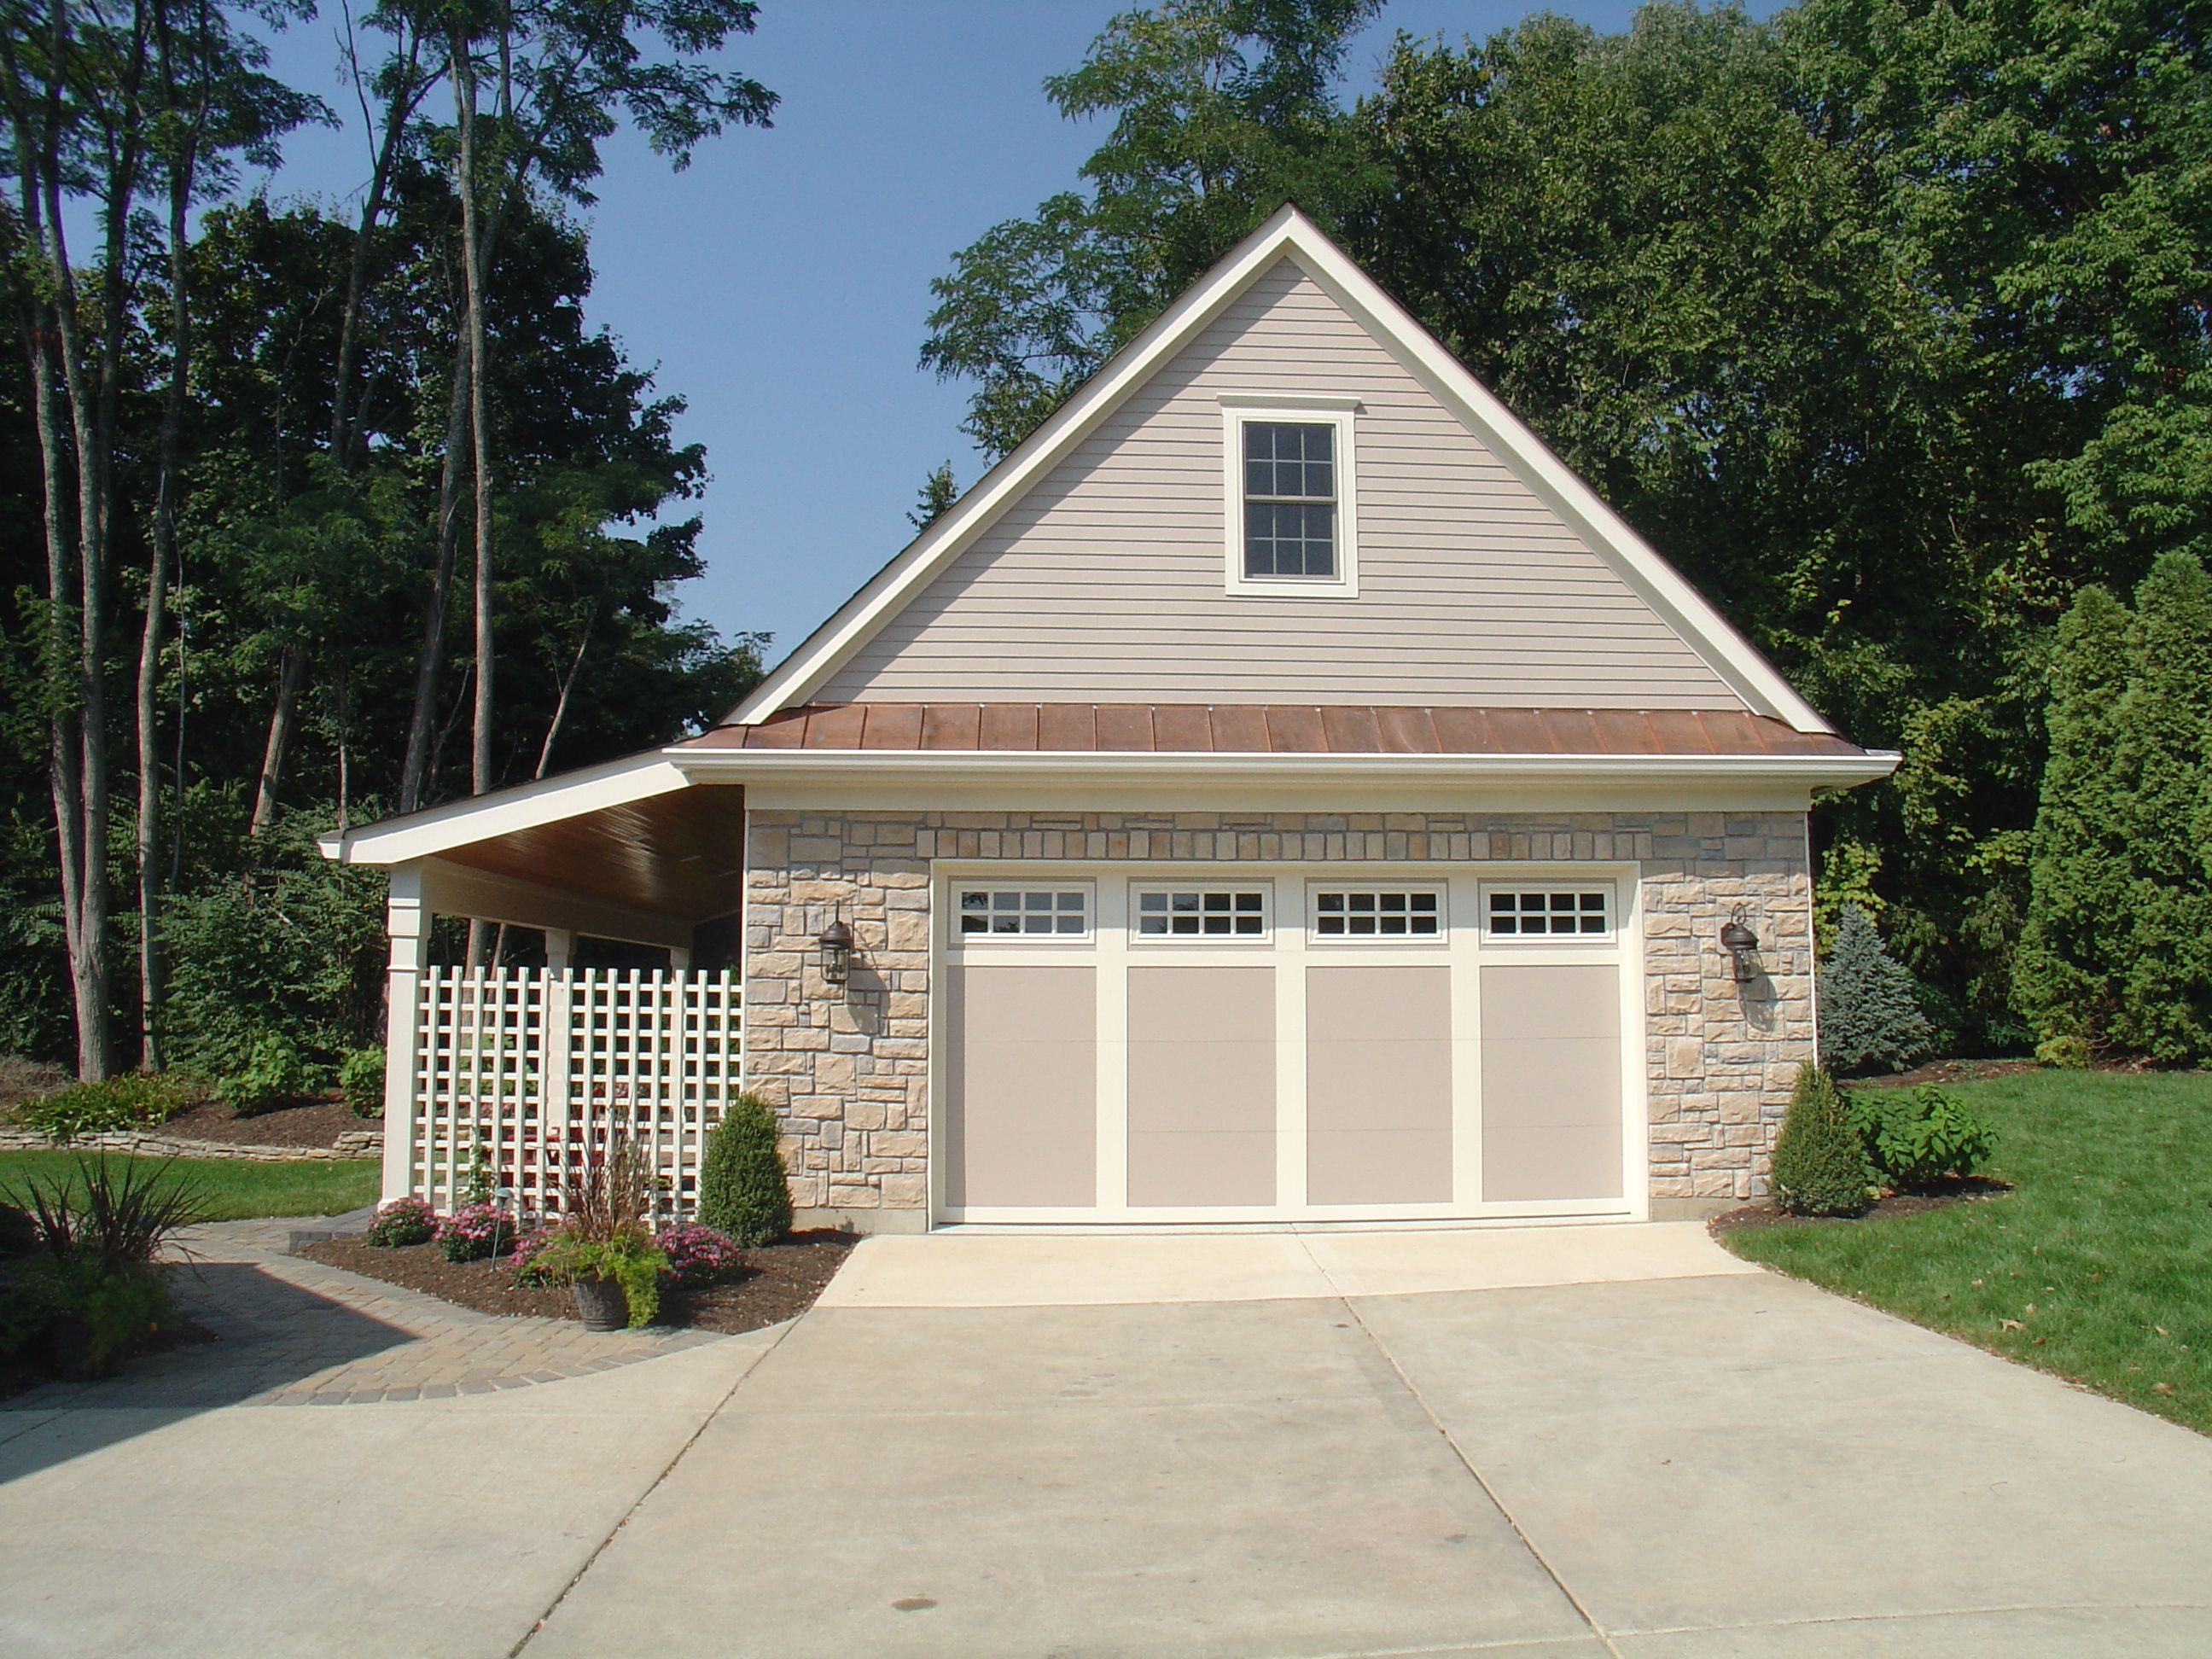 Another version of a detached garage with porch to the for Homes with detached garage